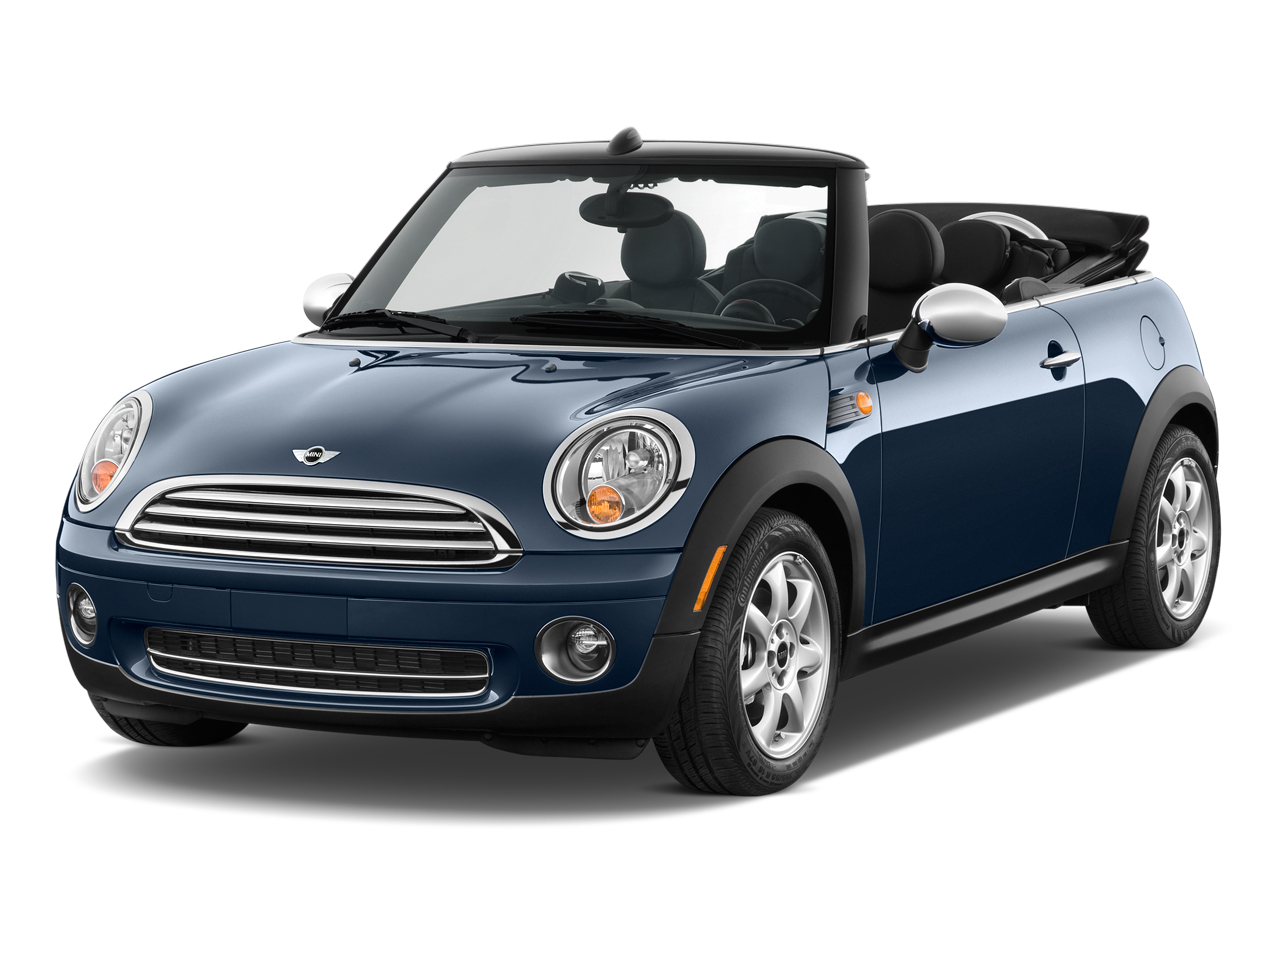 2010 mini cooper convertible review ratings specs prices and photos the car connection. Black Bedroom Furniture Sets. Home Design Ideas